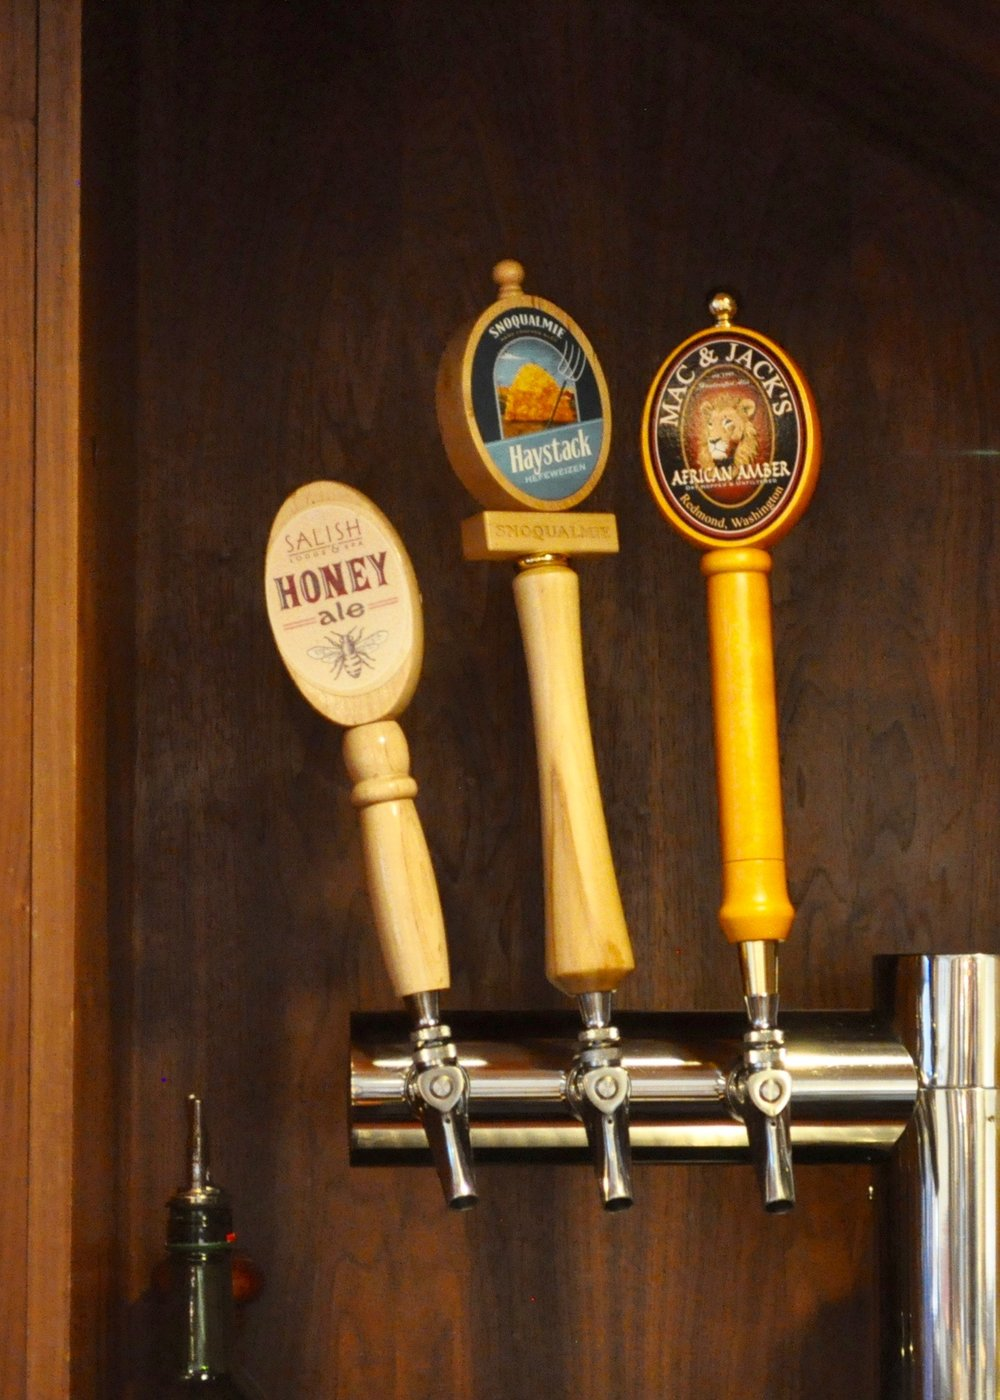 honey ale on tap at Salish Lodge